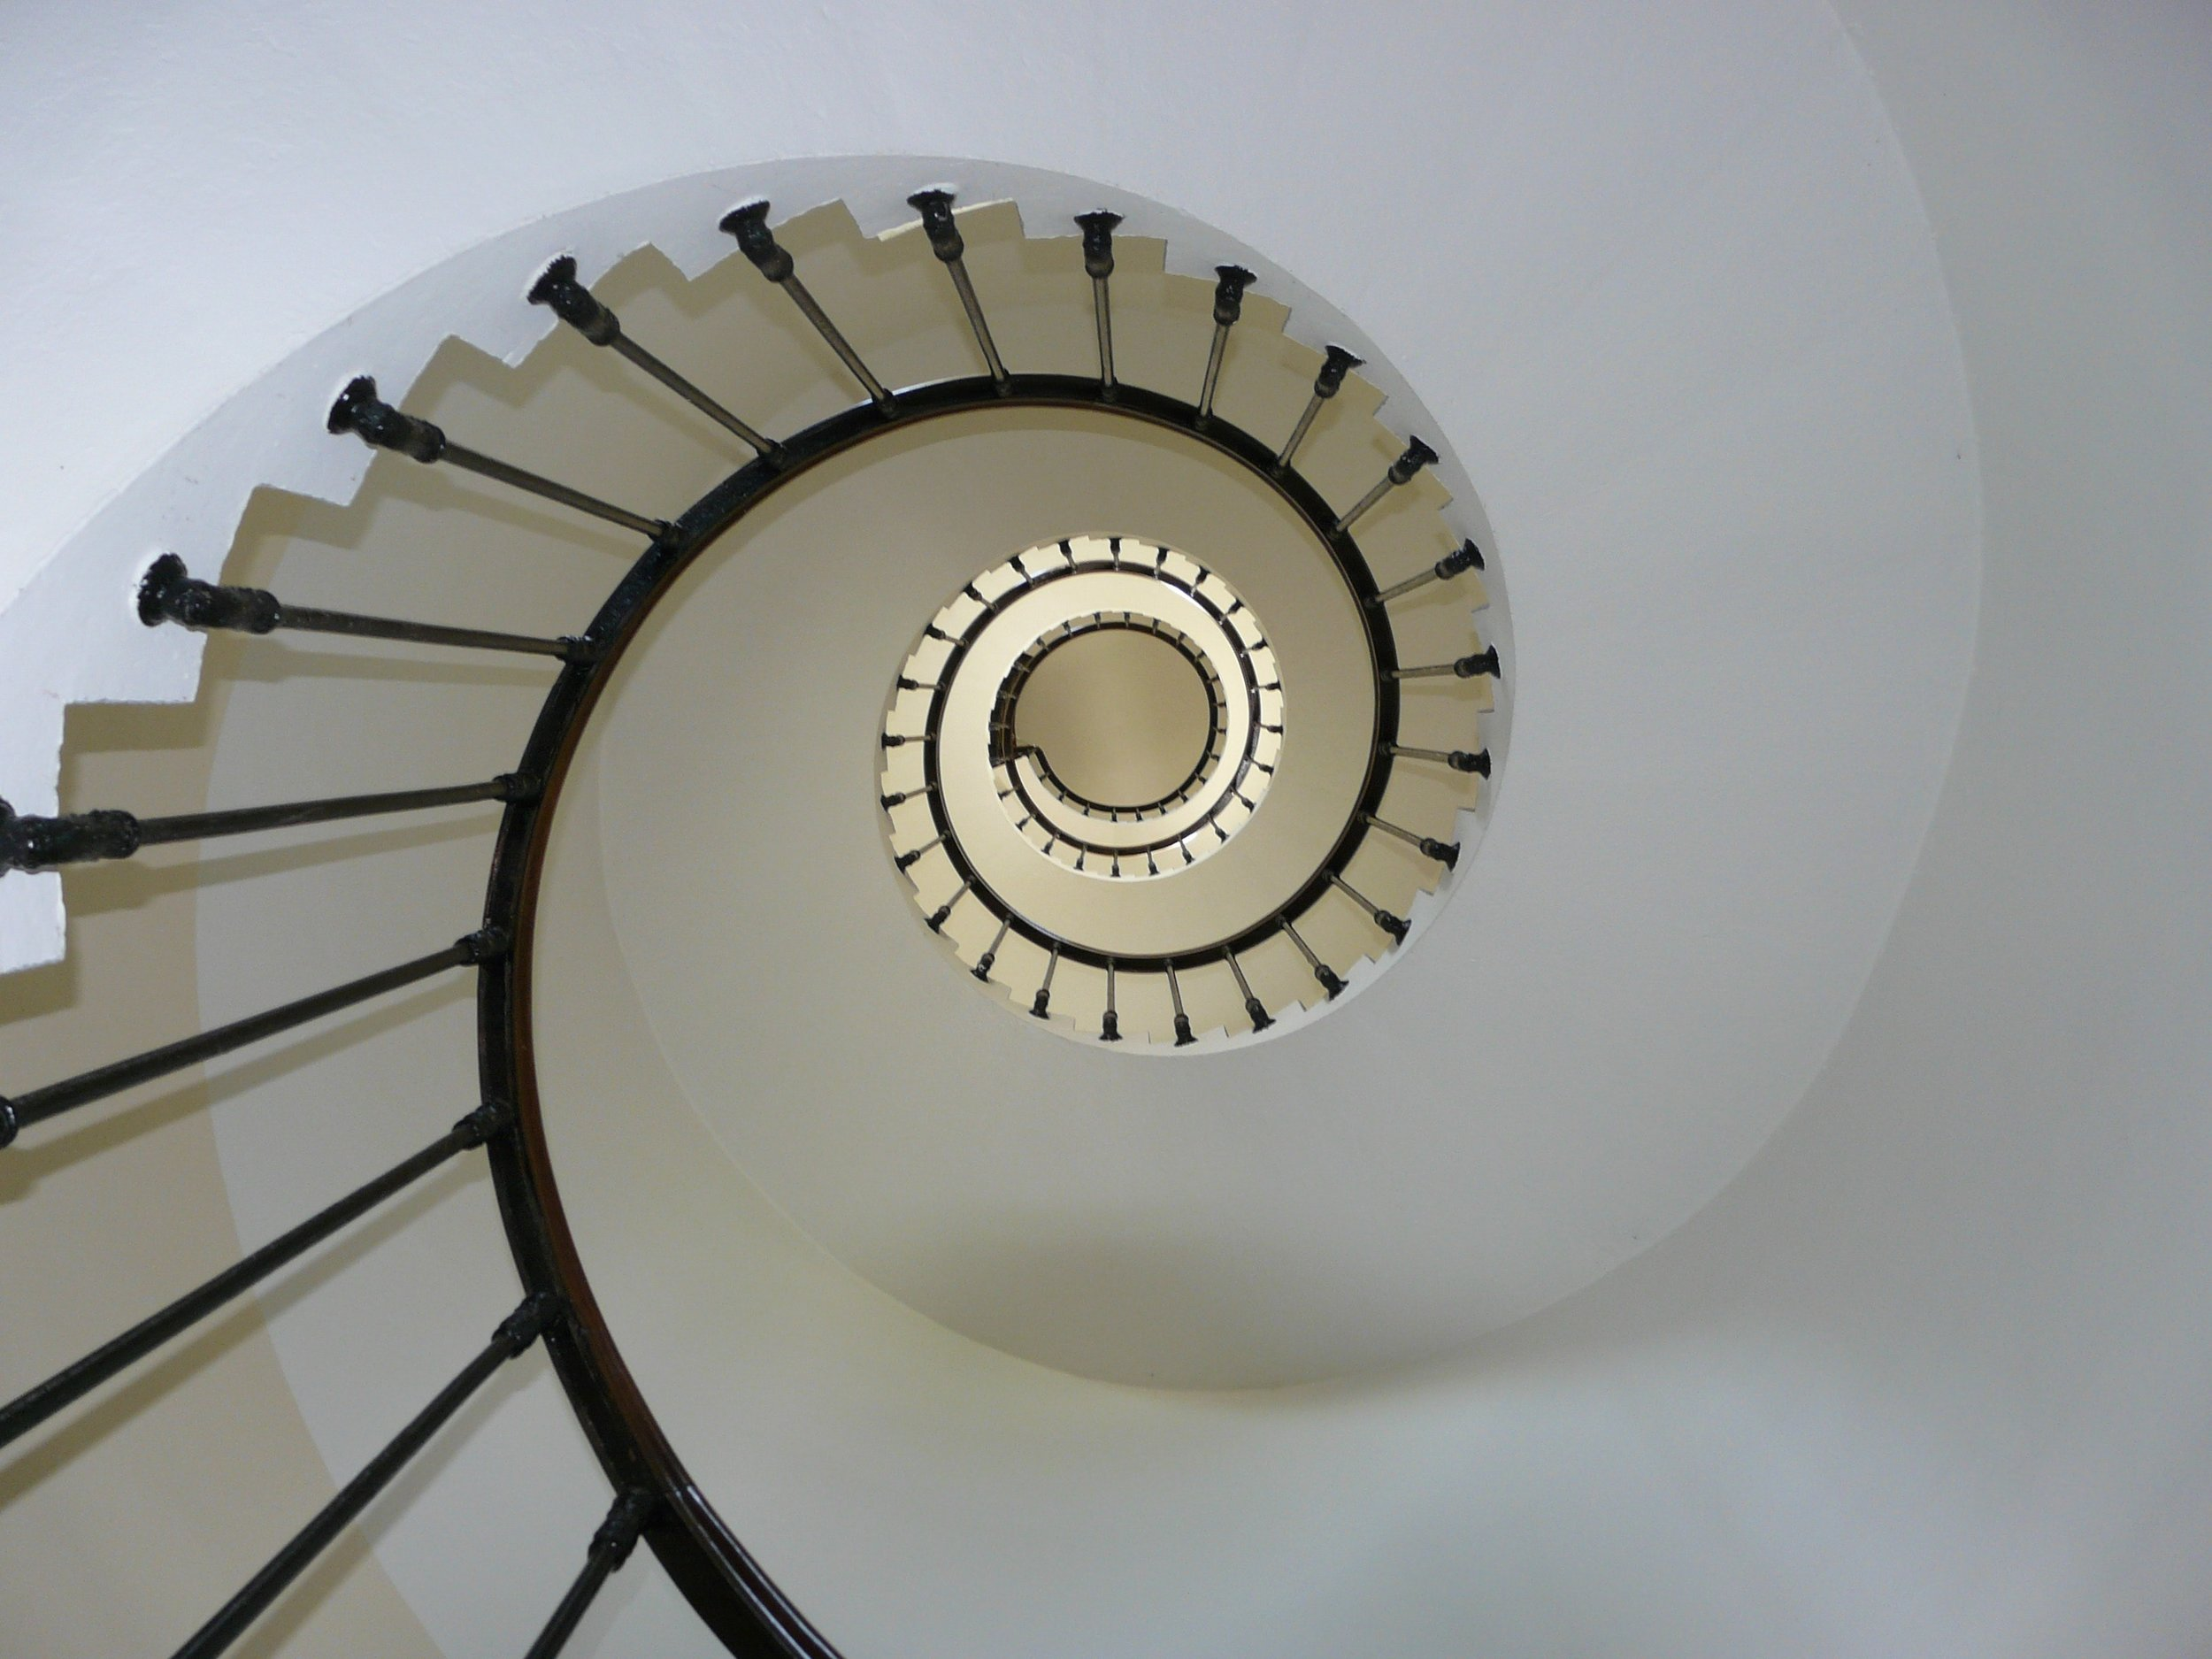 spiral-staircase-staircase-stairs-53554.jpg